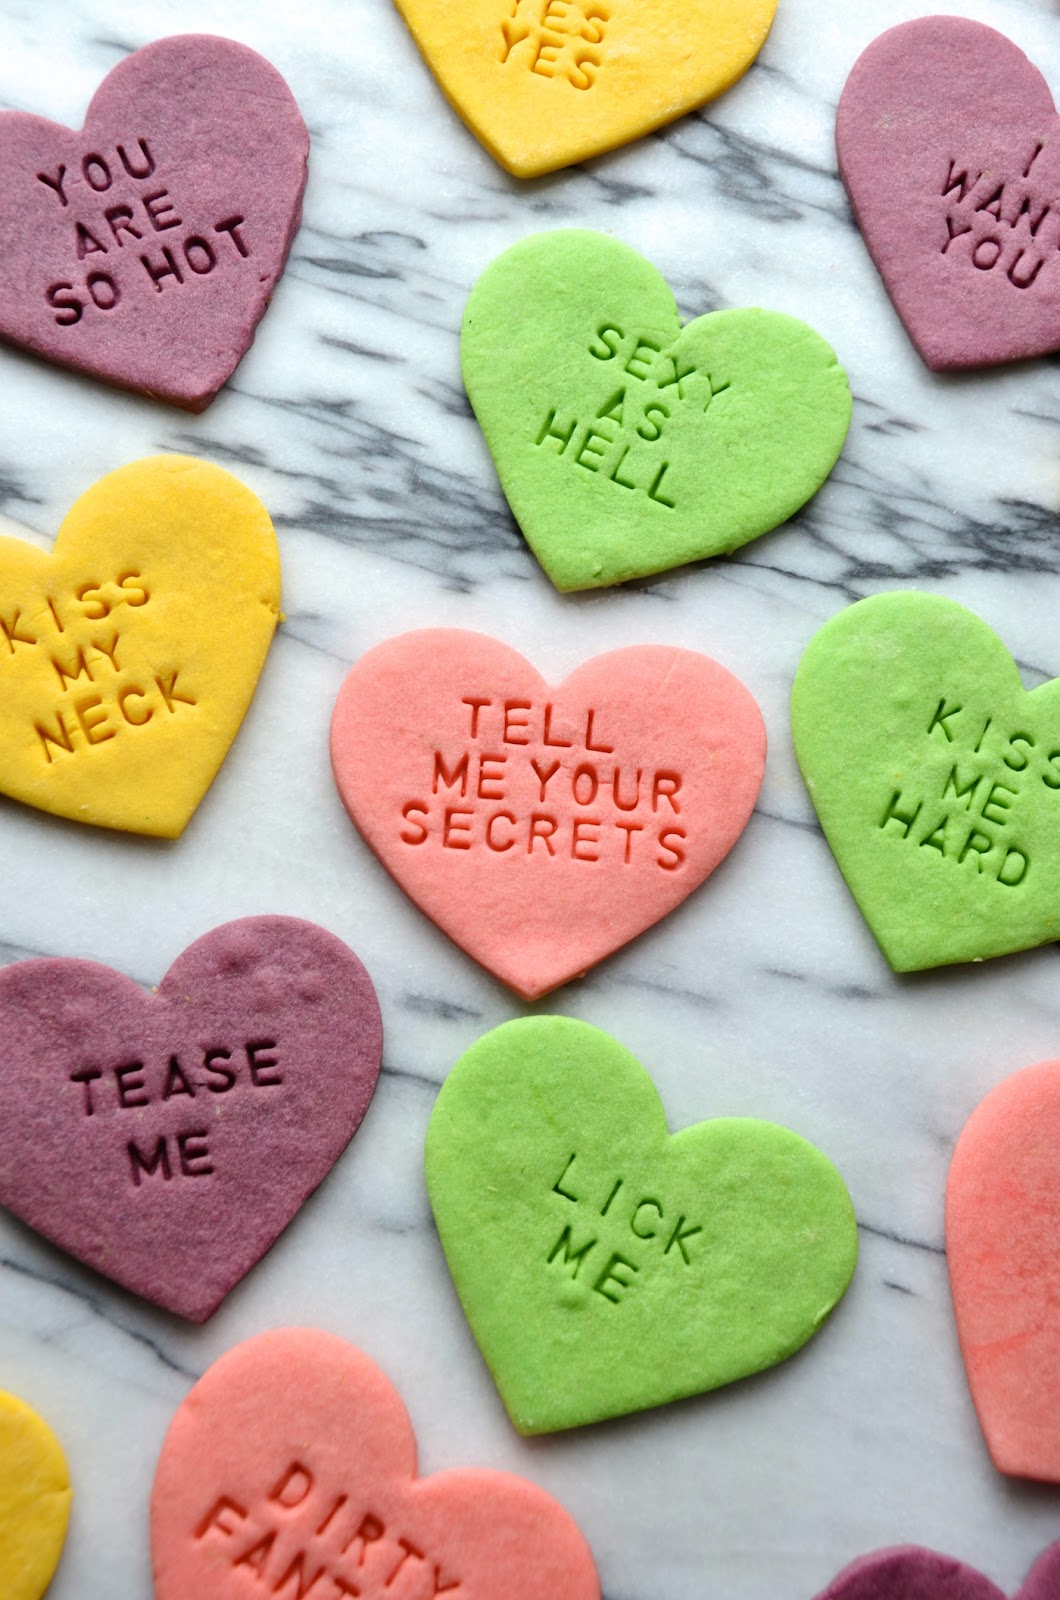 Couch sexy conversation hearts kerala all